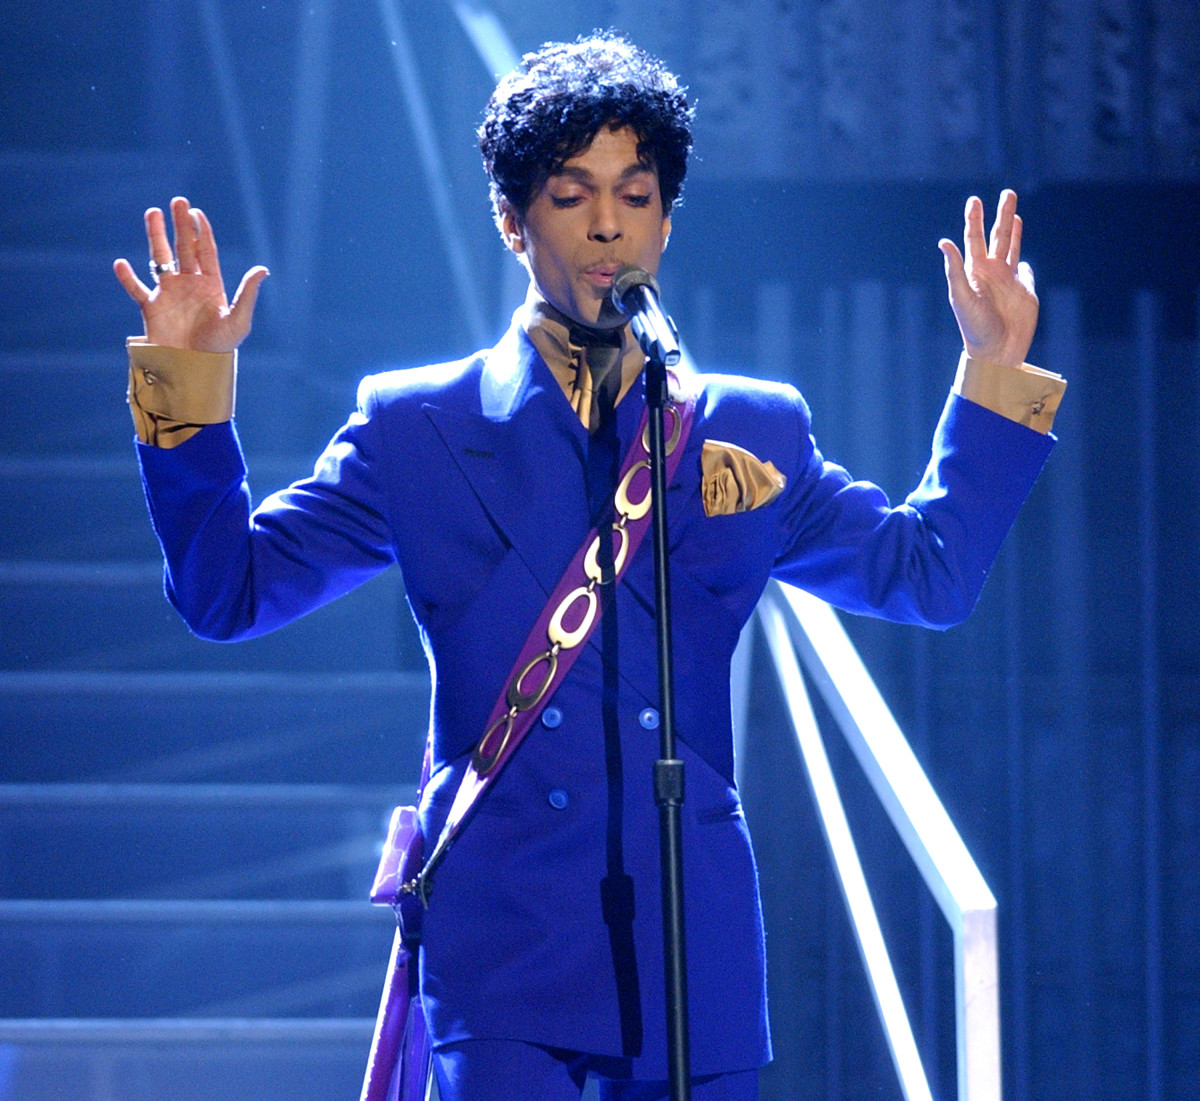 Happy Birthday to one of the greatest to ever do it in Prince!